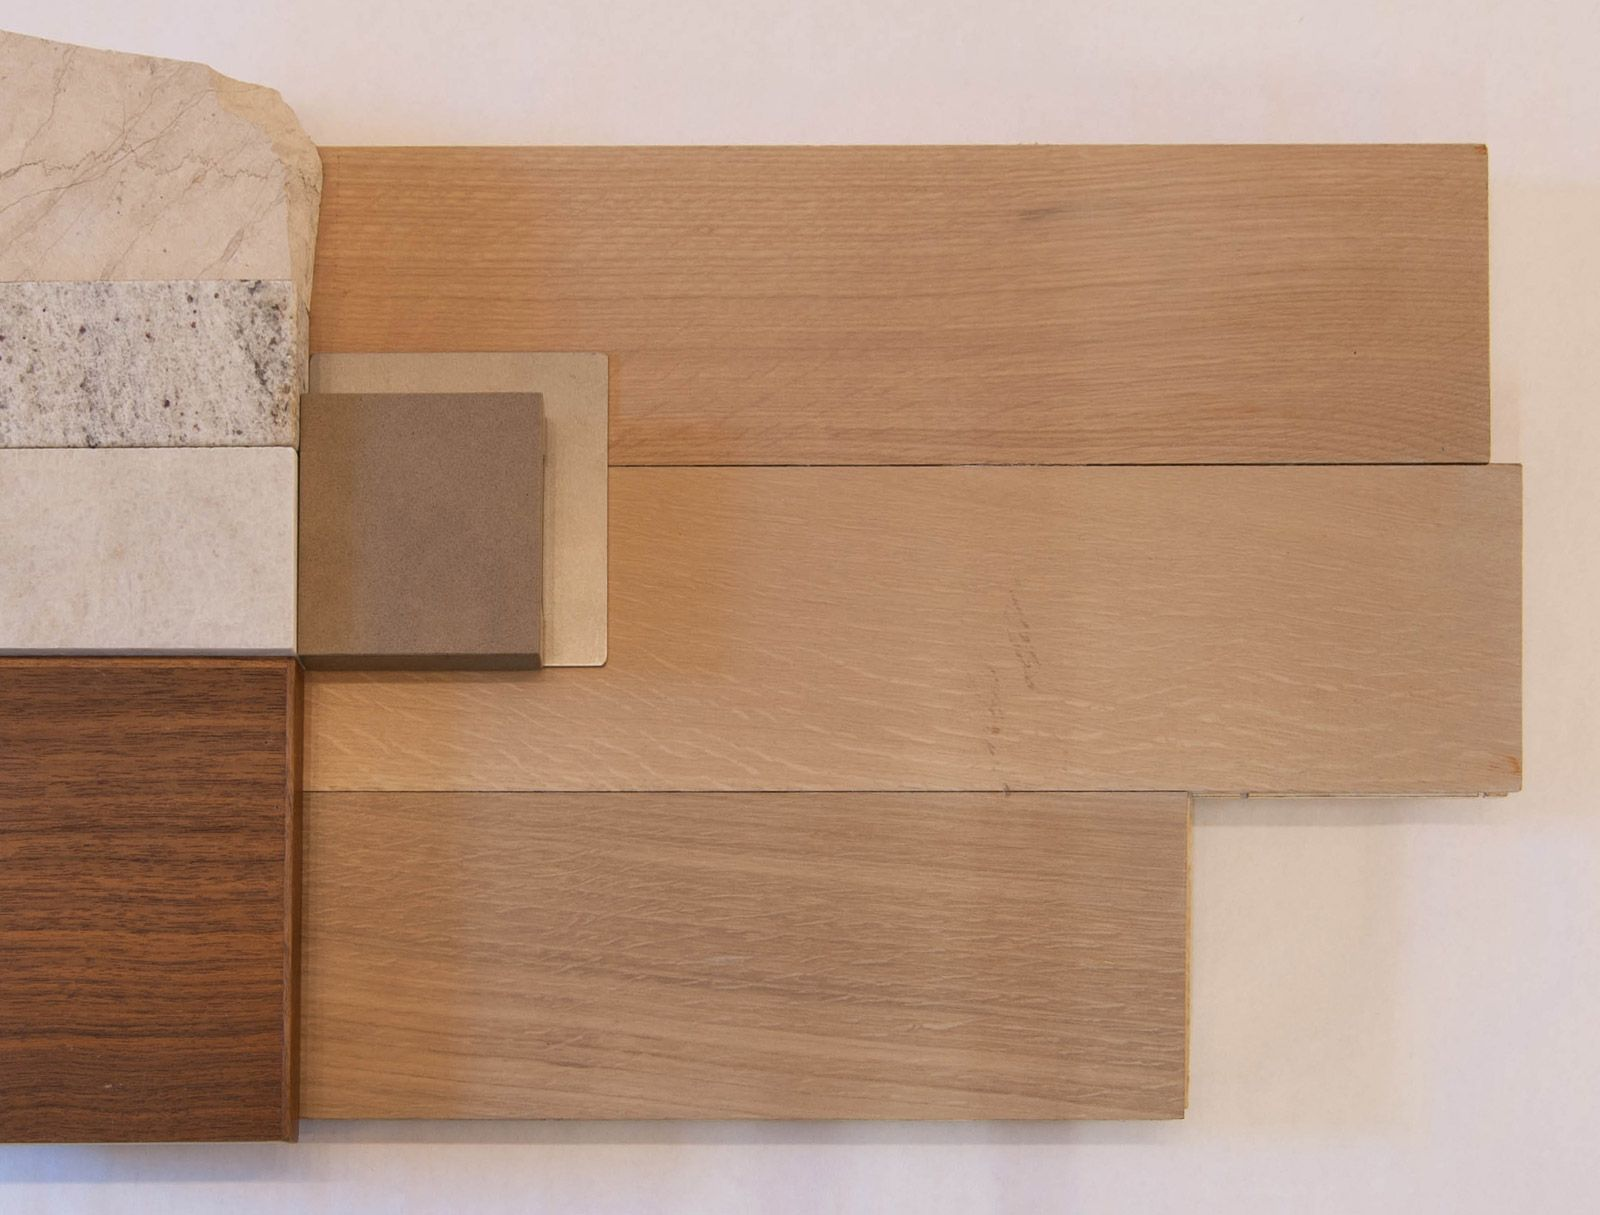 Fashion Proof Material Palettes Build Blog Material Palette Staining Cabinets White Oak Floors Living Room